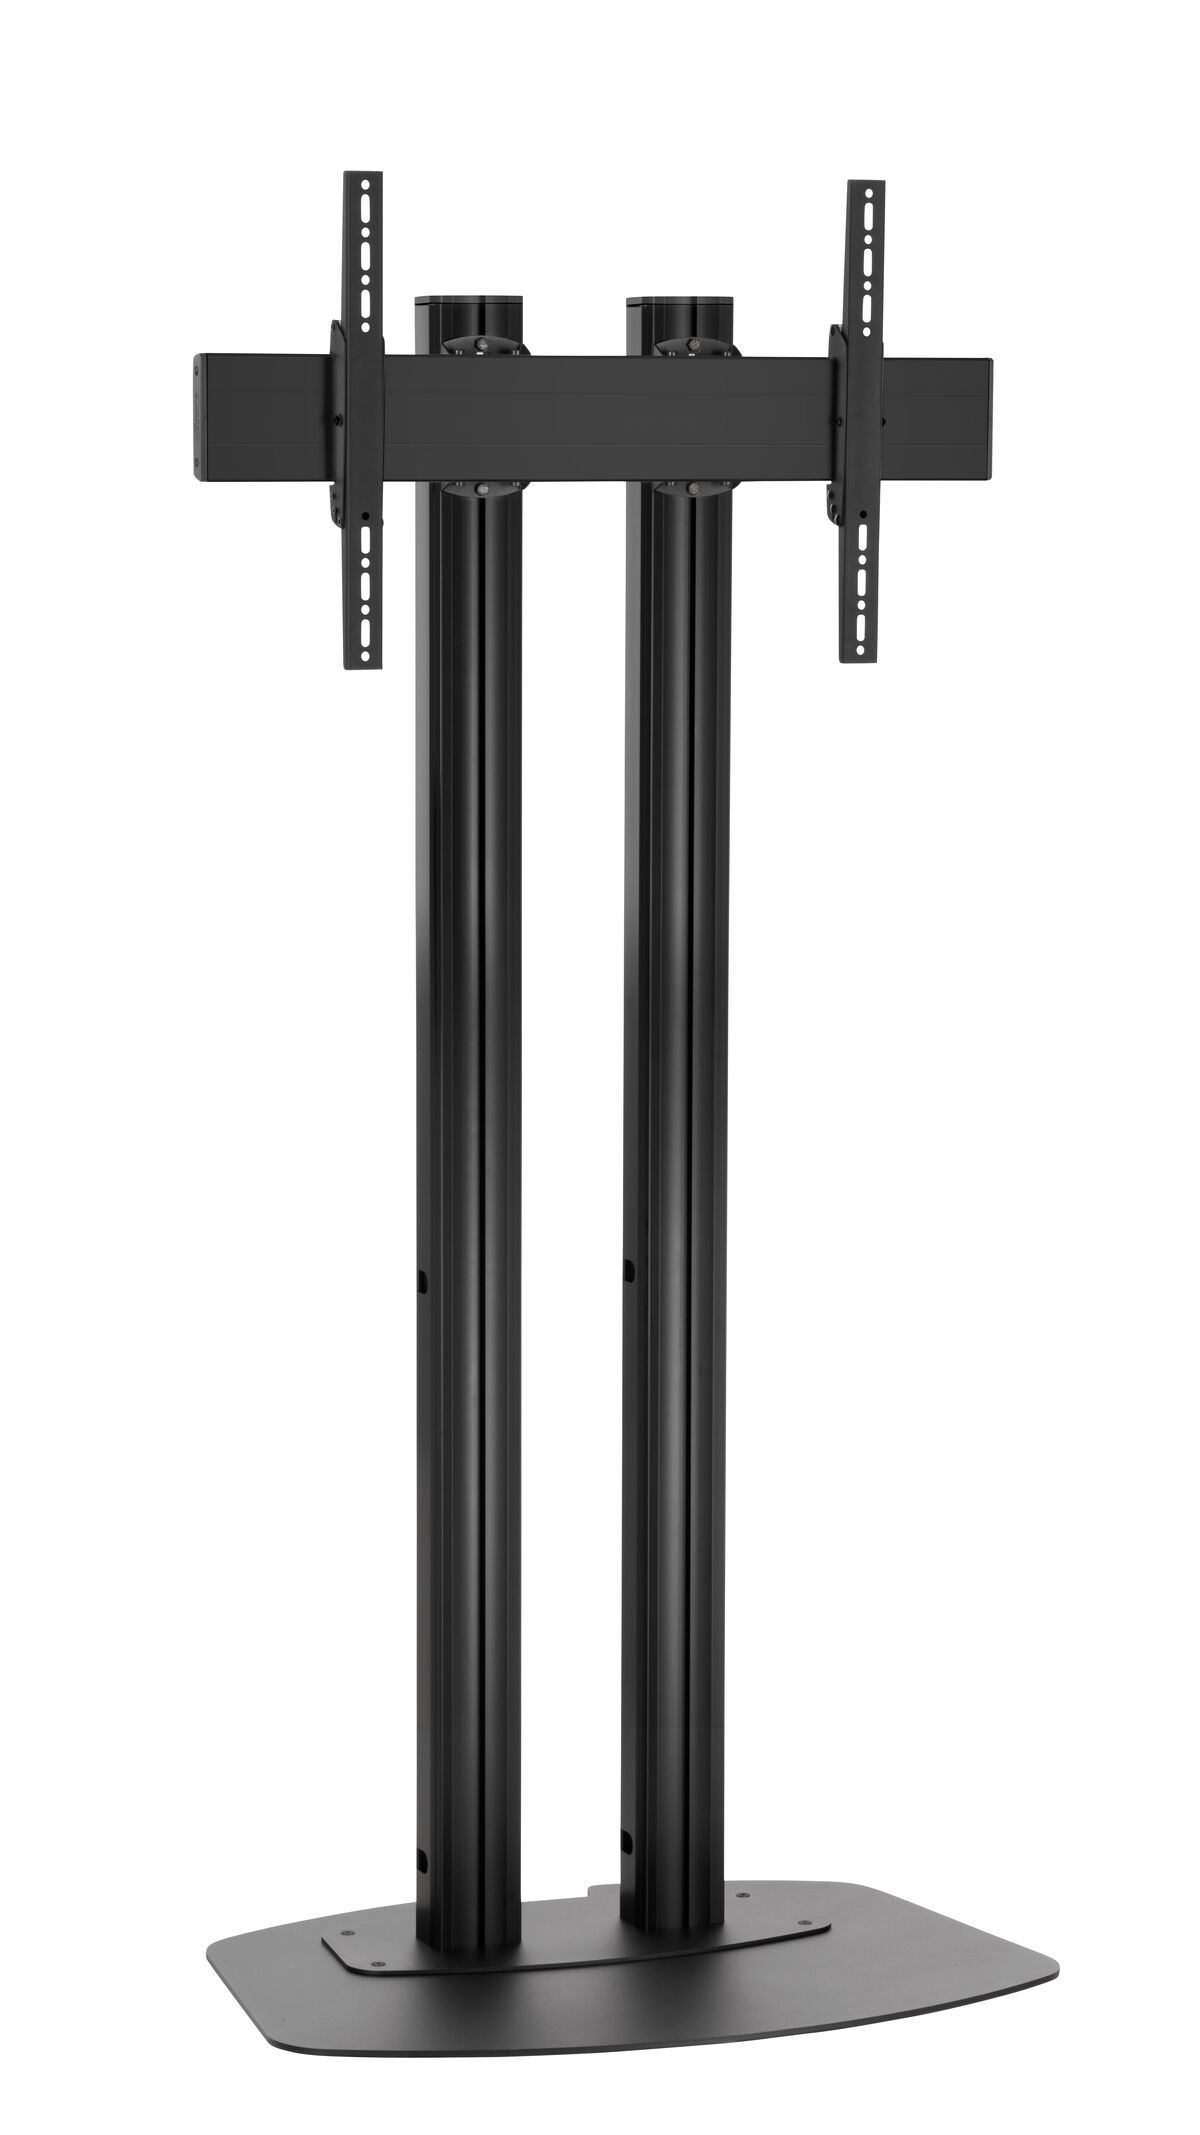 Vogel's FD1864B Floor stand - Product